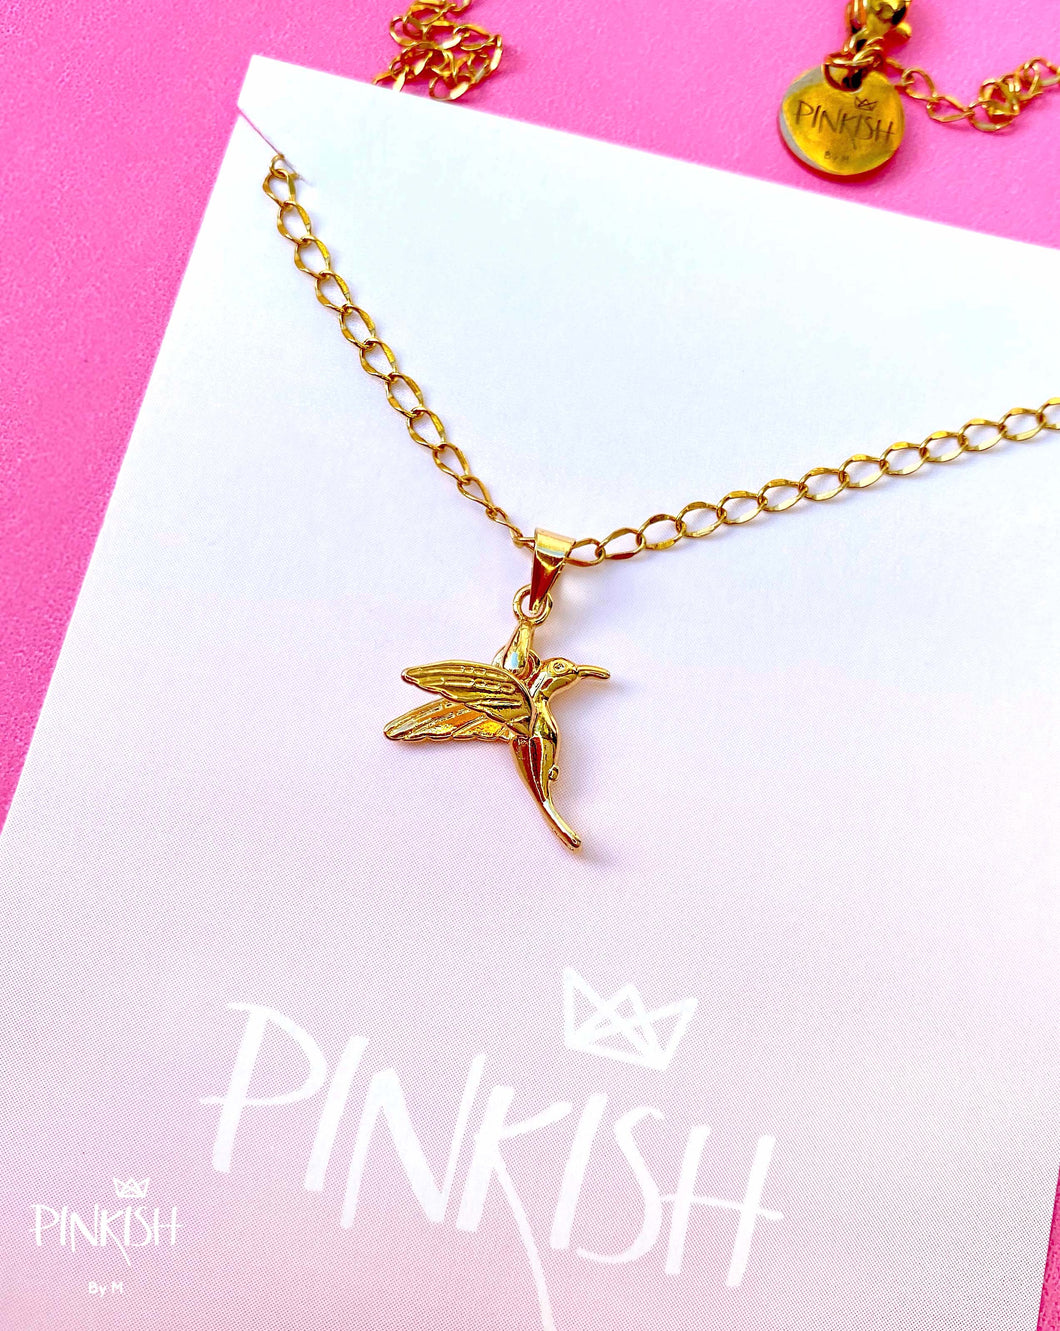 14kt Gold Plated Hummingbird Spring Pendant Necklace Cute Bird Jewelry